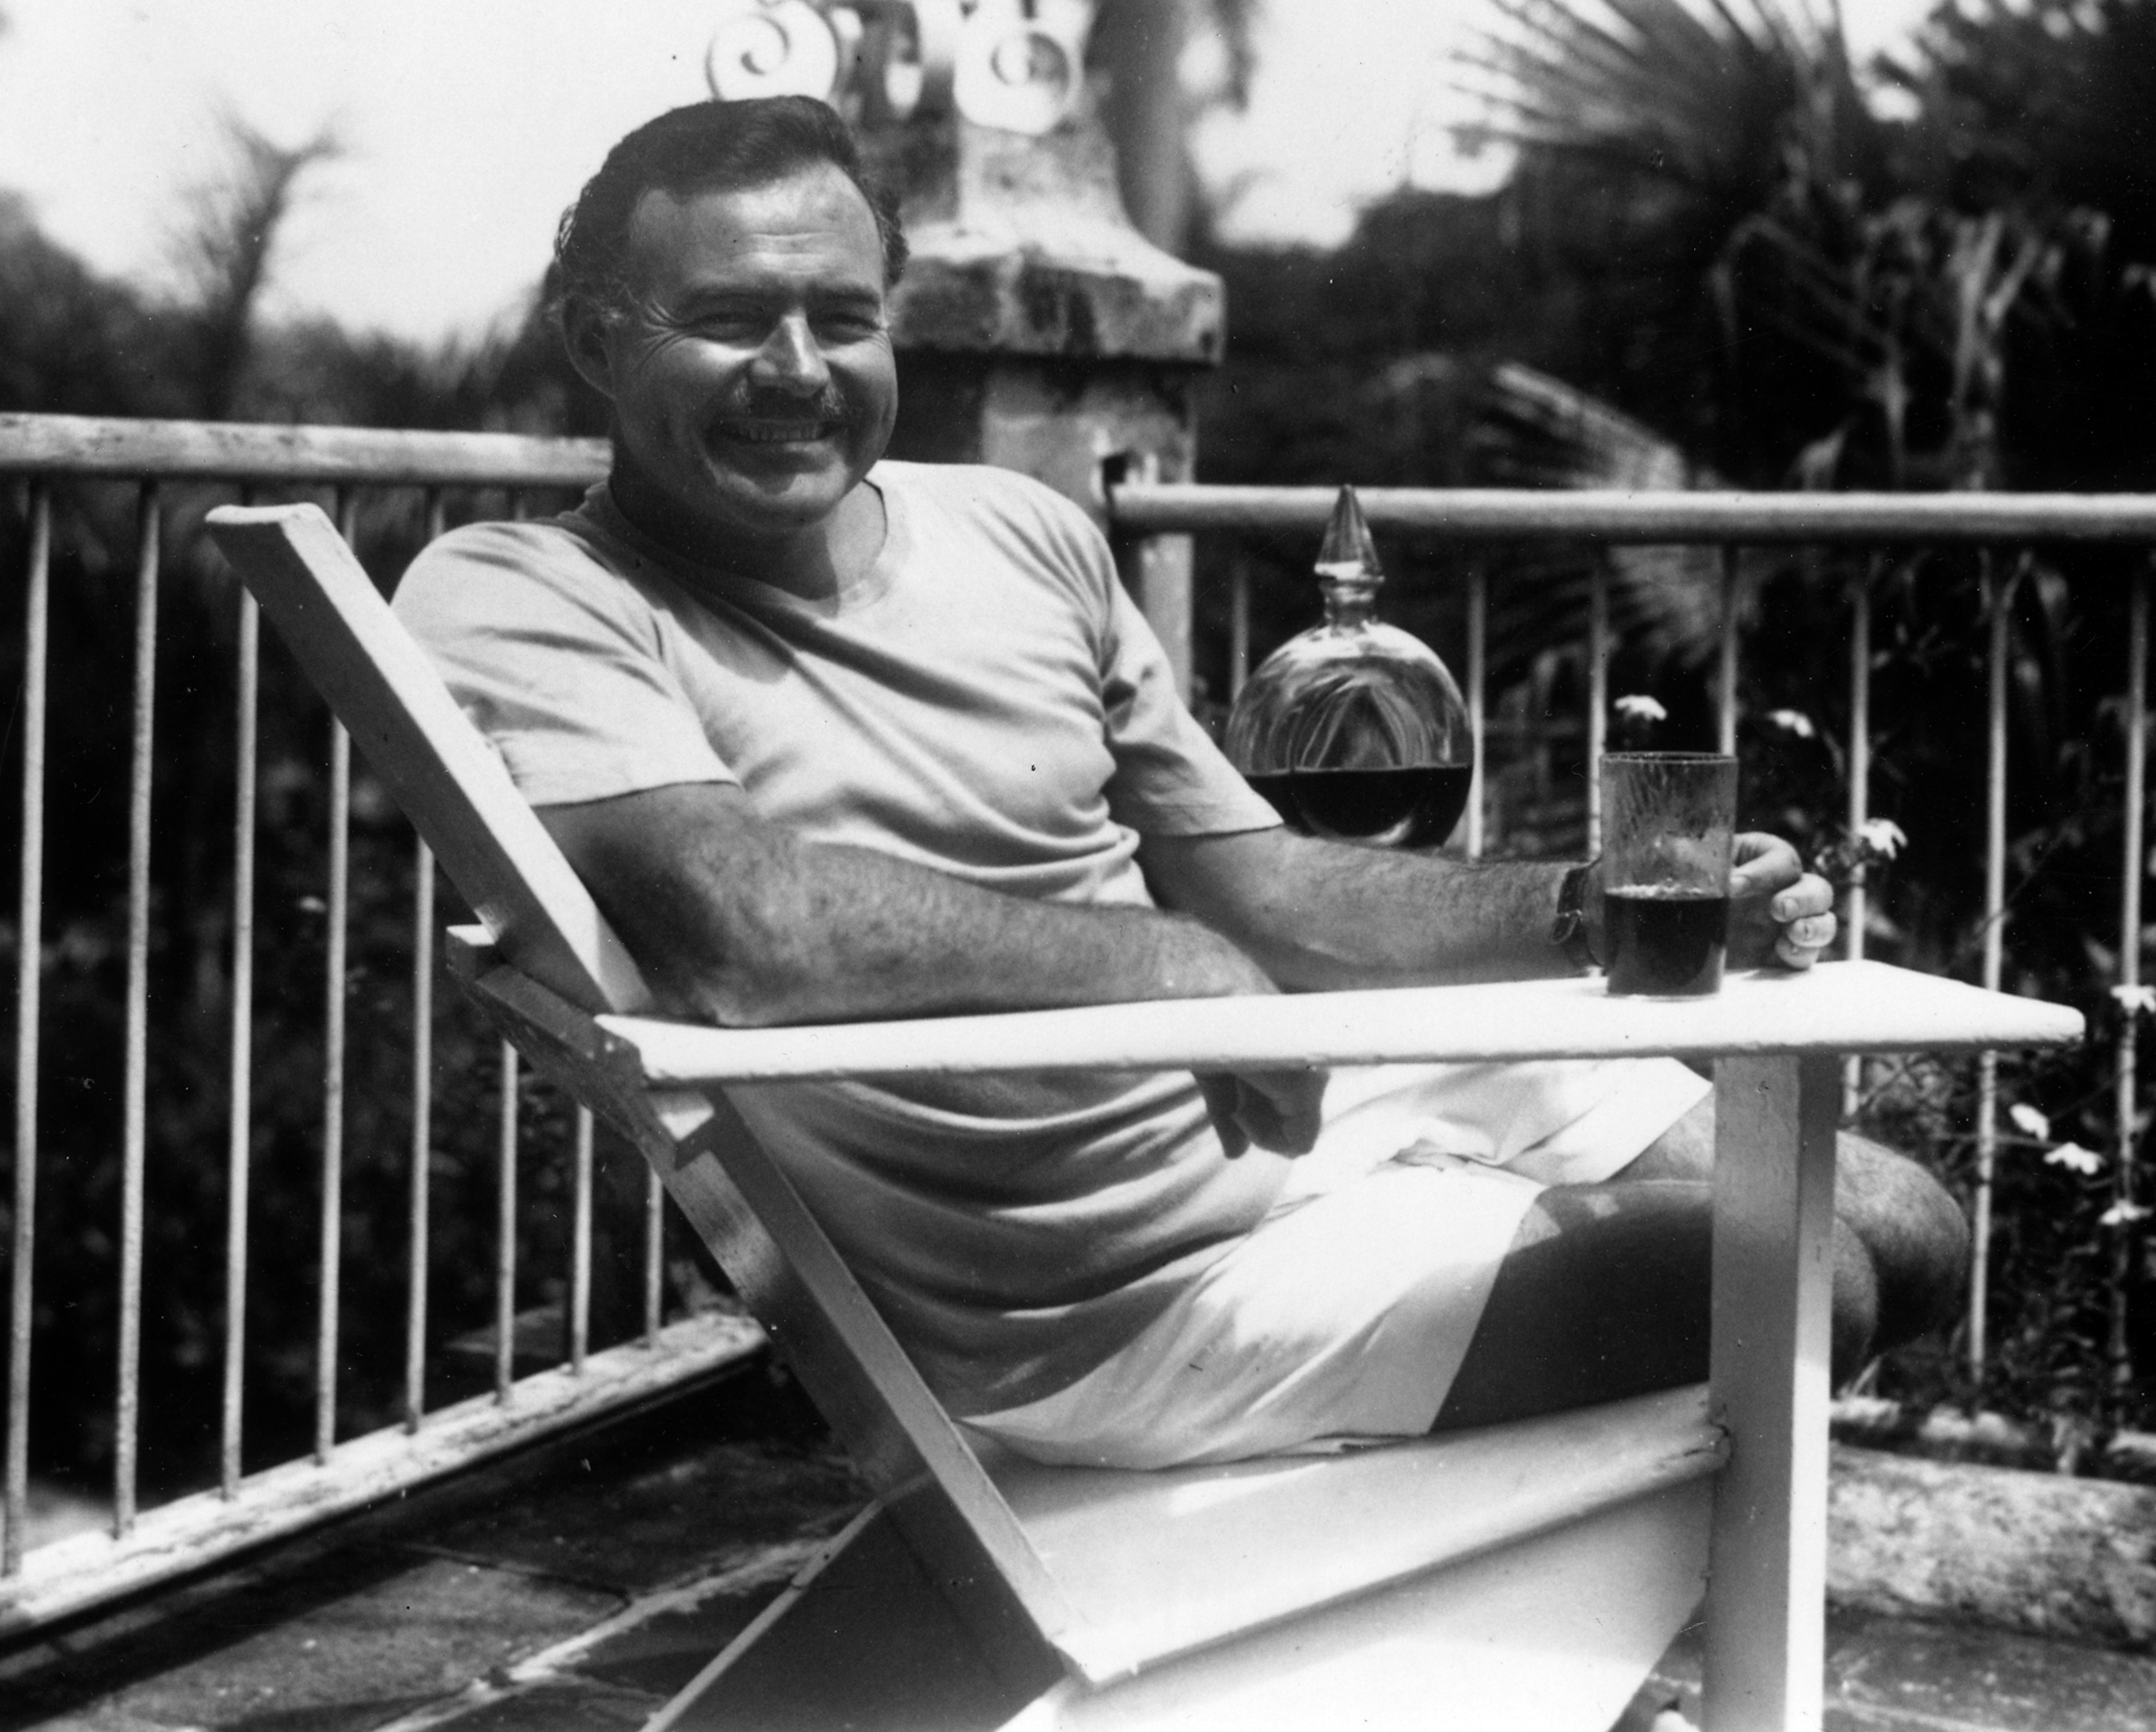 These Are The Four Types Of Drunk People, Which Are You? Ernest Hemingway at the Finca Vigia Cuba 1946 1